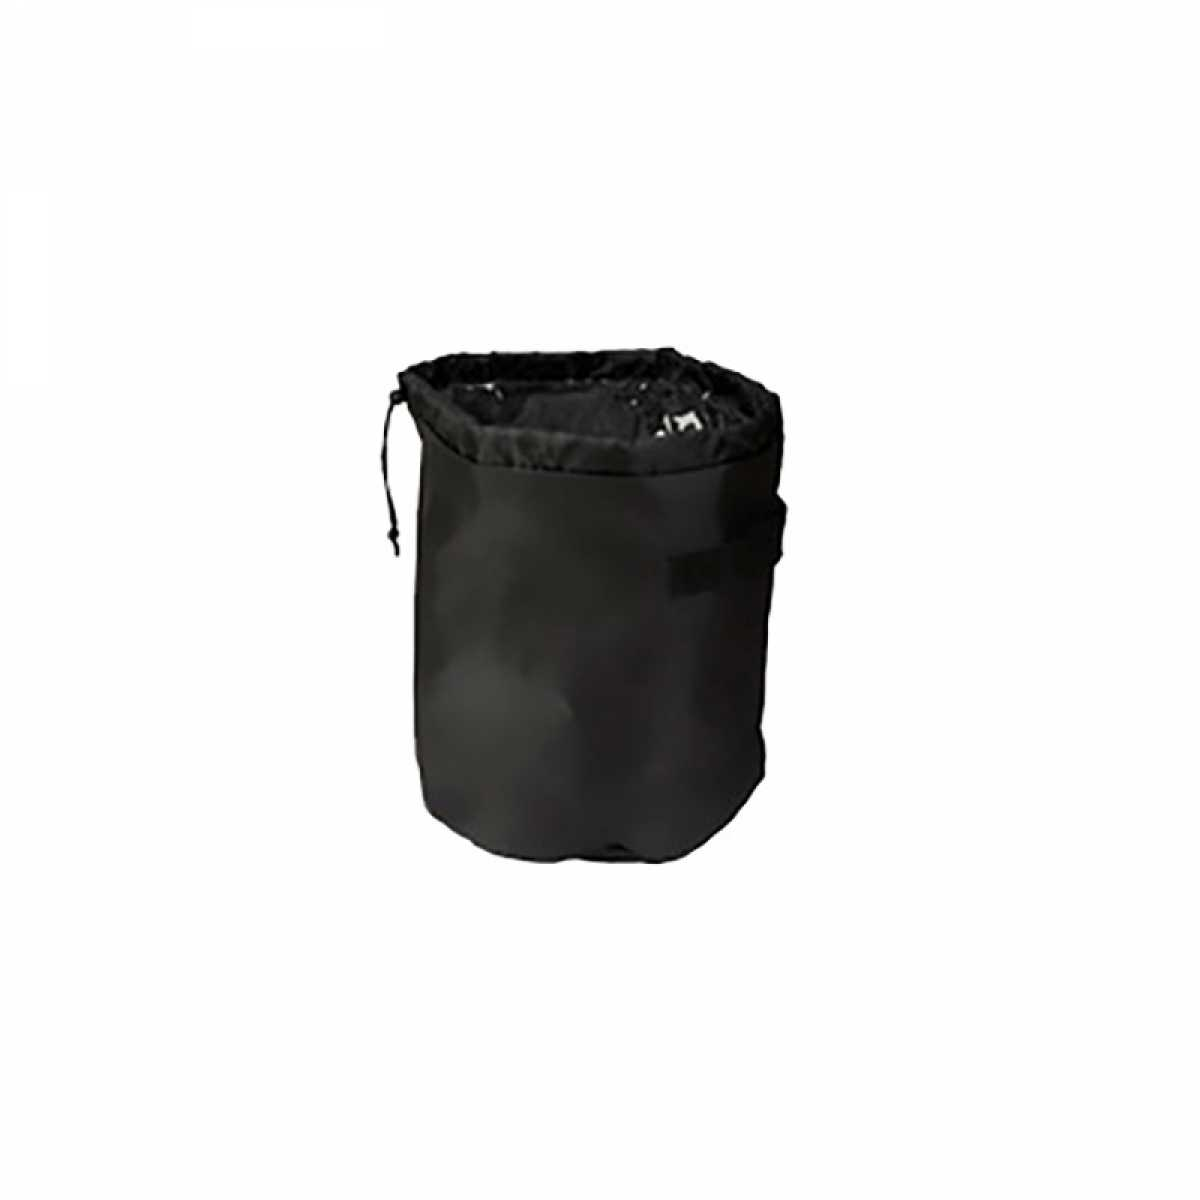 MOBILE PACK Garbage Tote